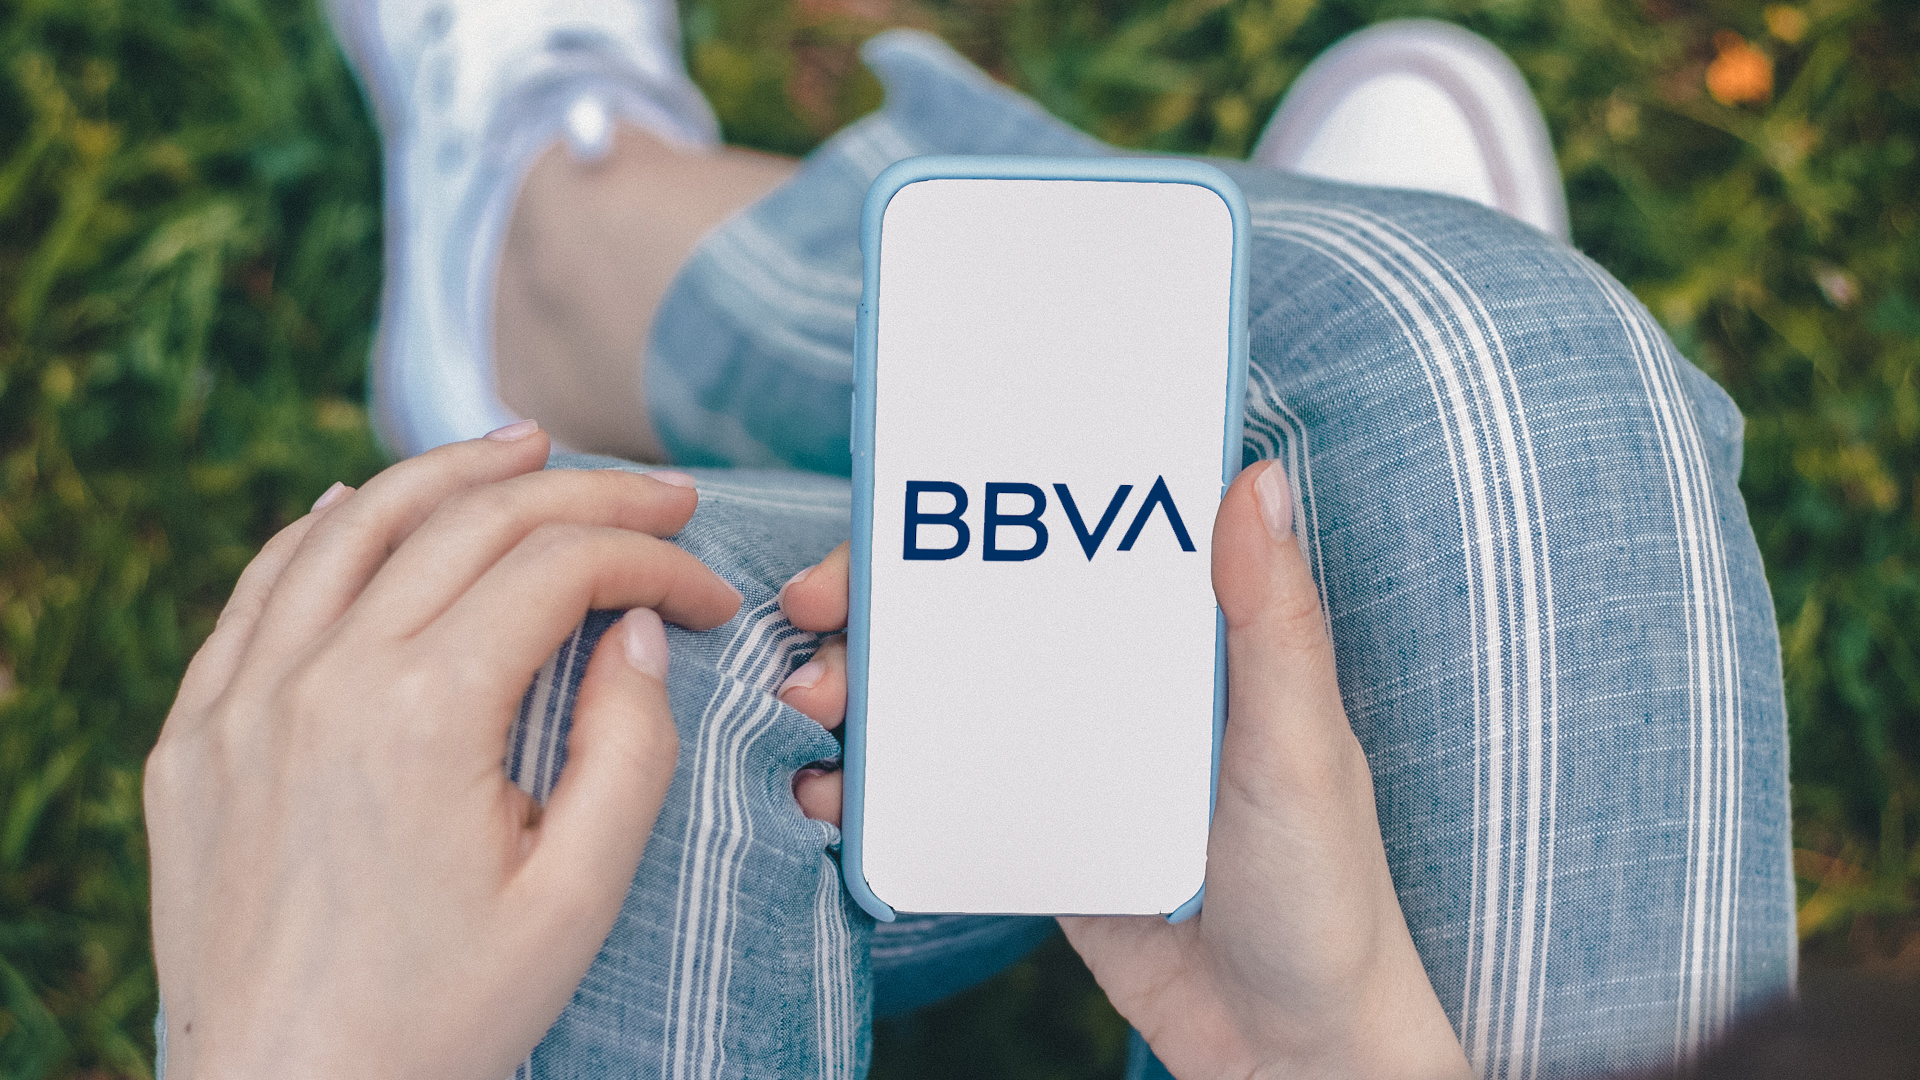 BBVA bank logo